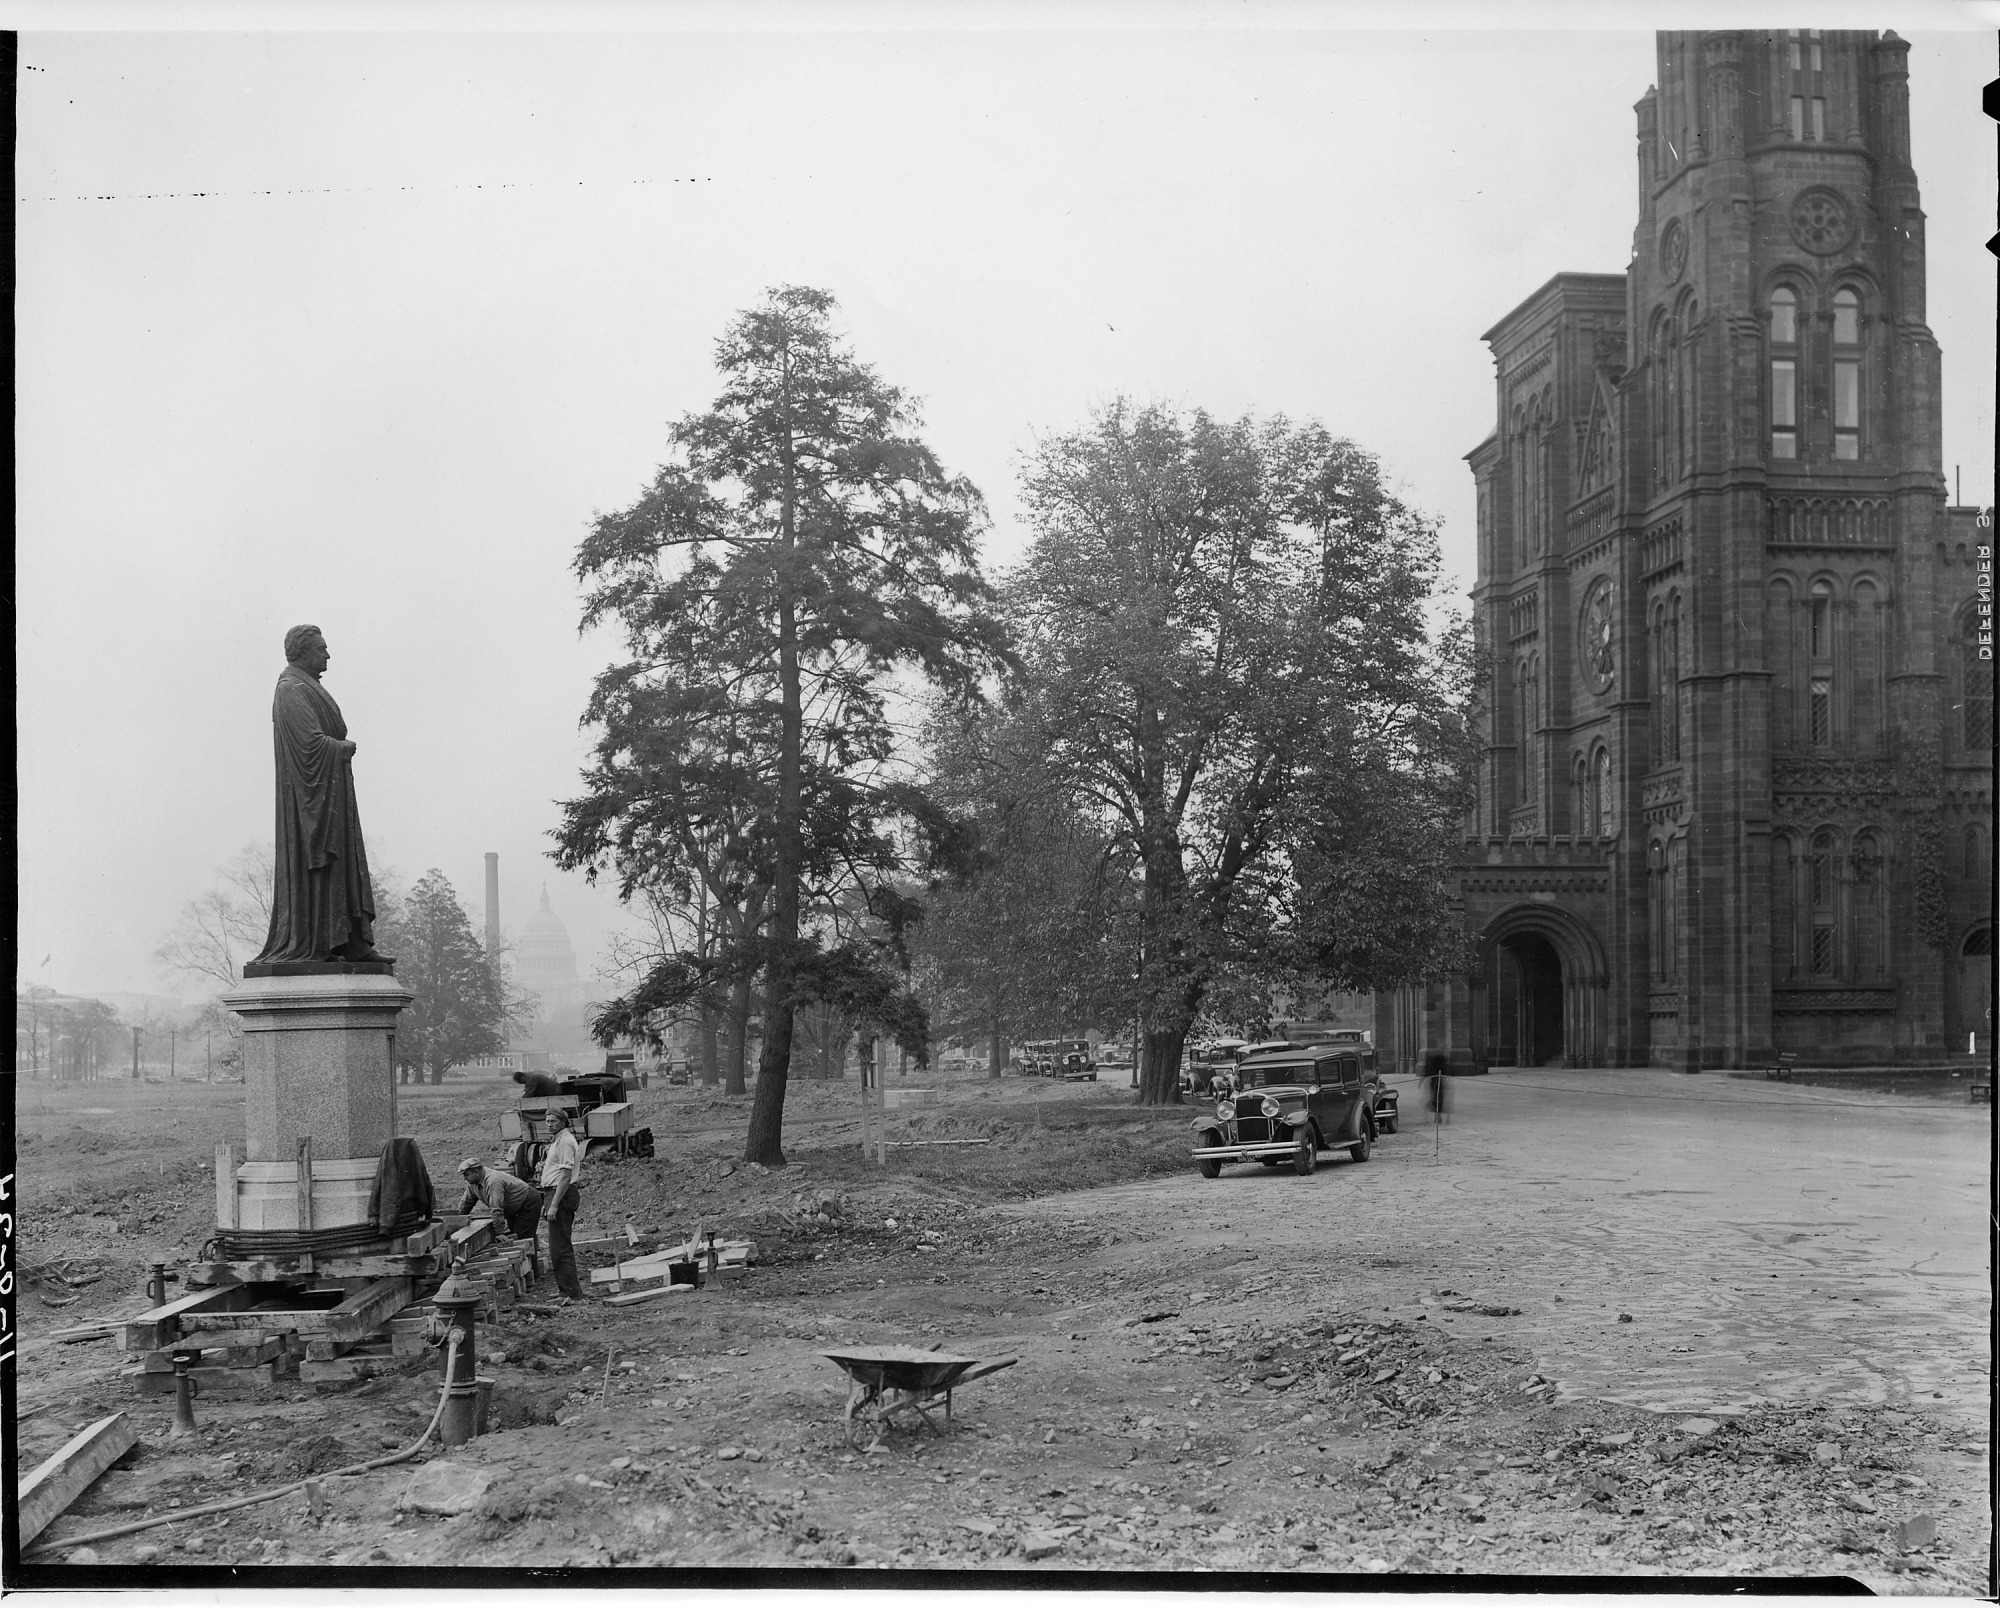 Image of Joseph Henry statue in front of the Smithsonian Institution Building, 1934. Smithsonian Institution Archives, negative number 2002-12163.